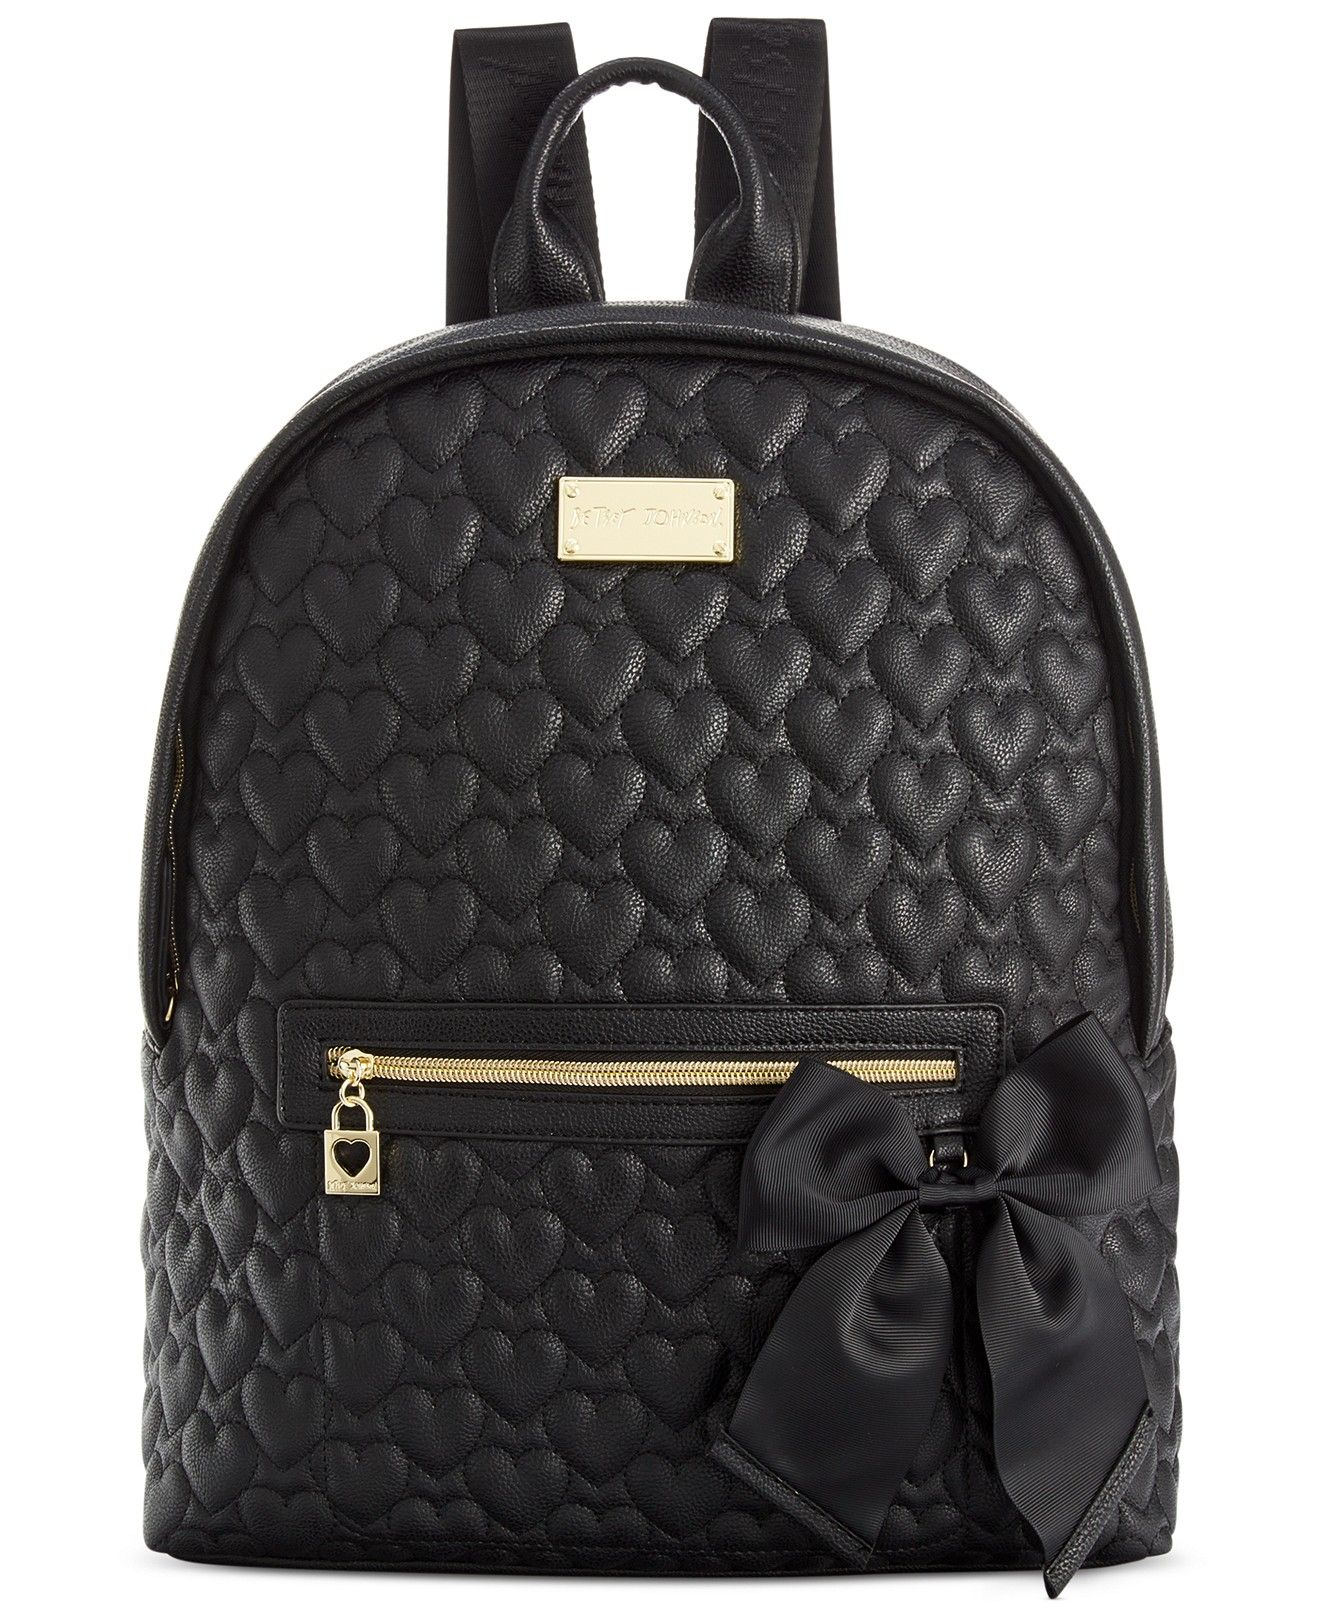 Betsey Johnson Macy's Exclusive Quilted Backpack - Handbags & Accessories - Macy's